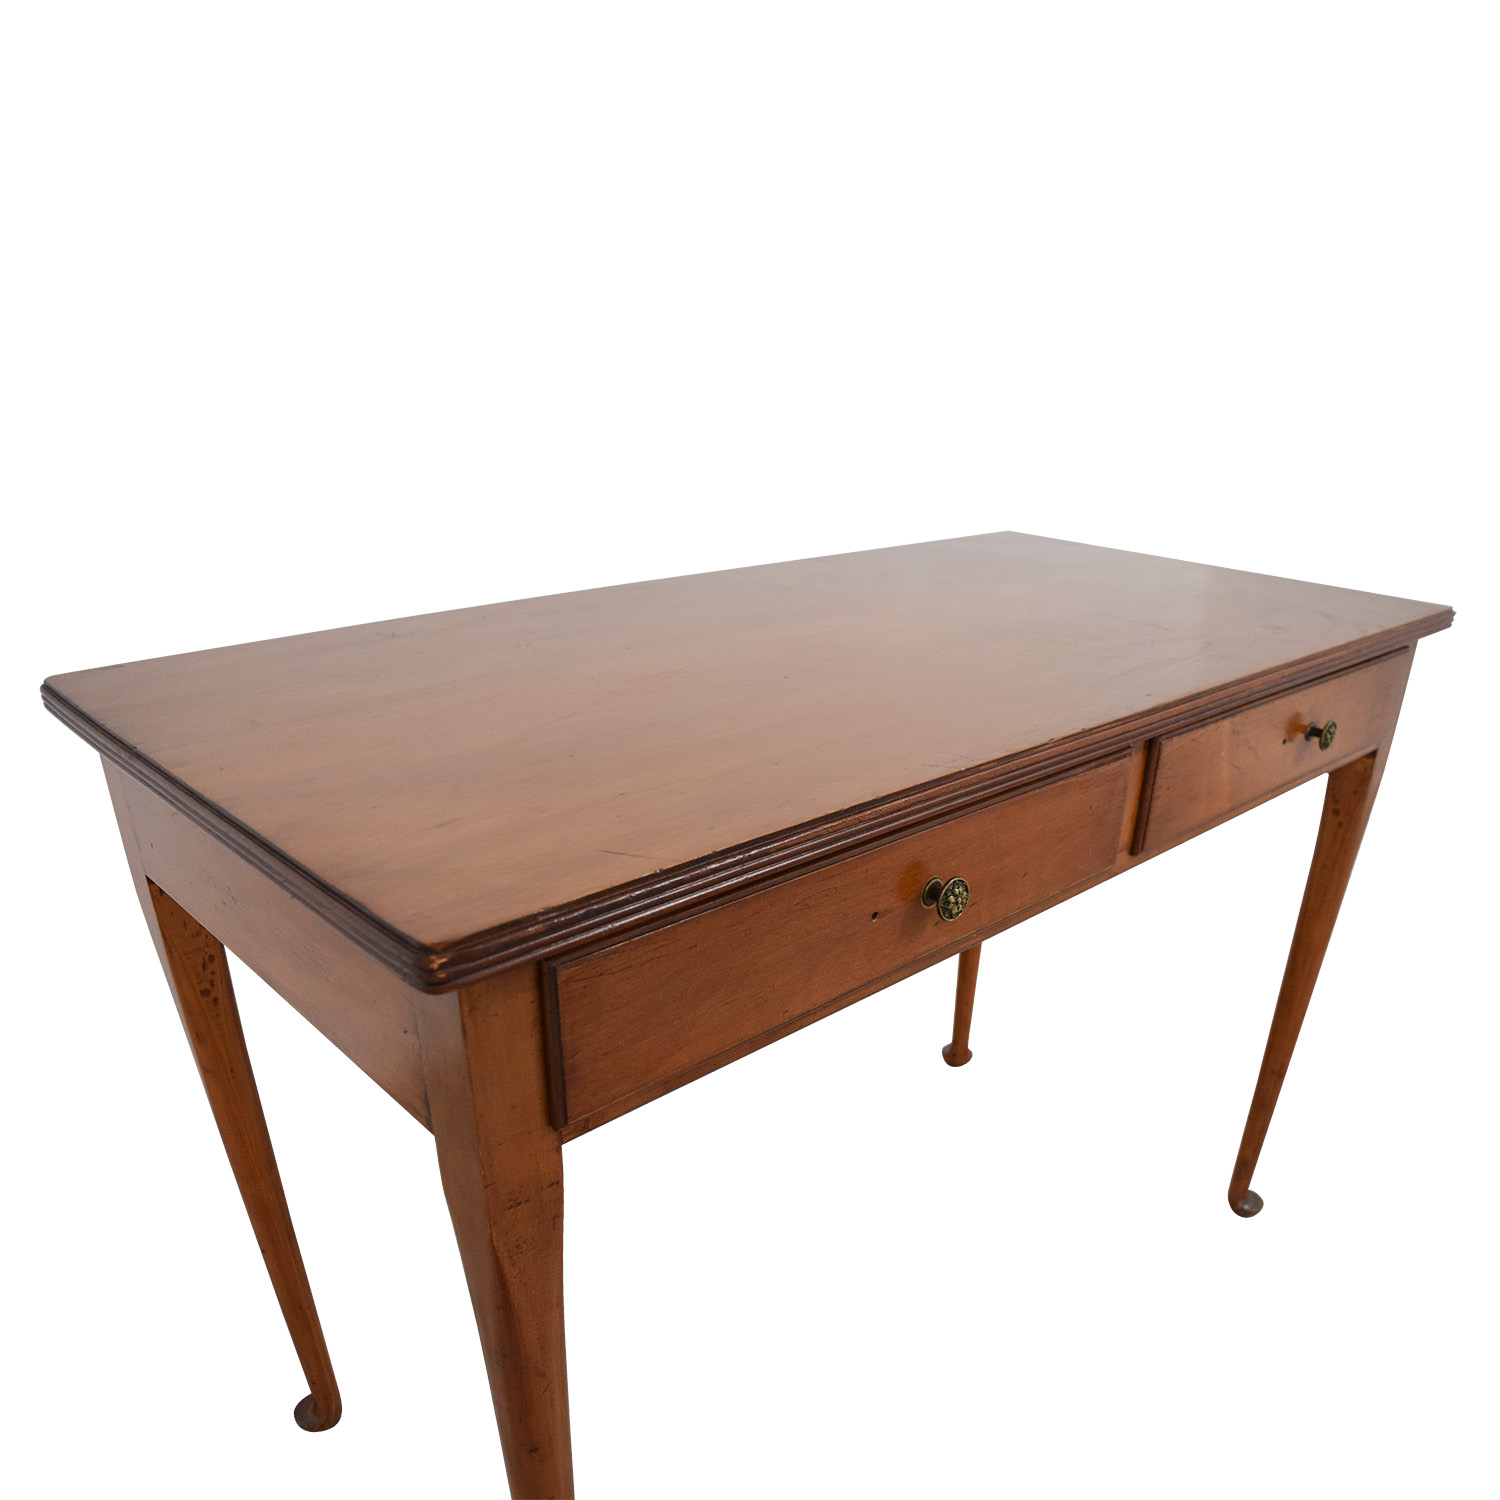 Furniture Masters Furniture Masters Wooden Two-Drawer Desk nyc